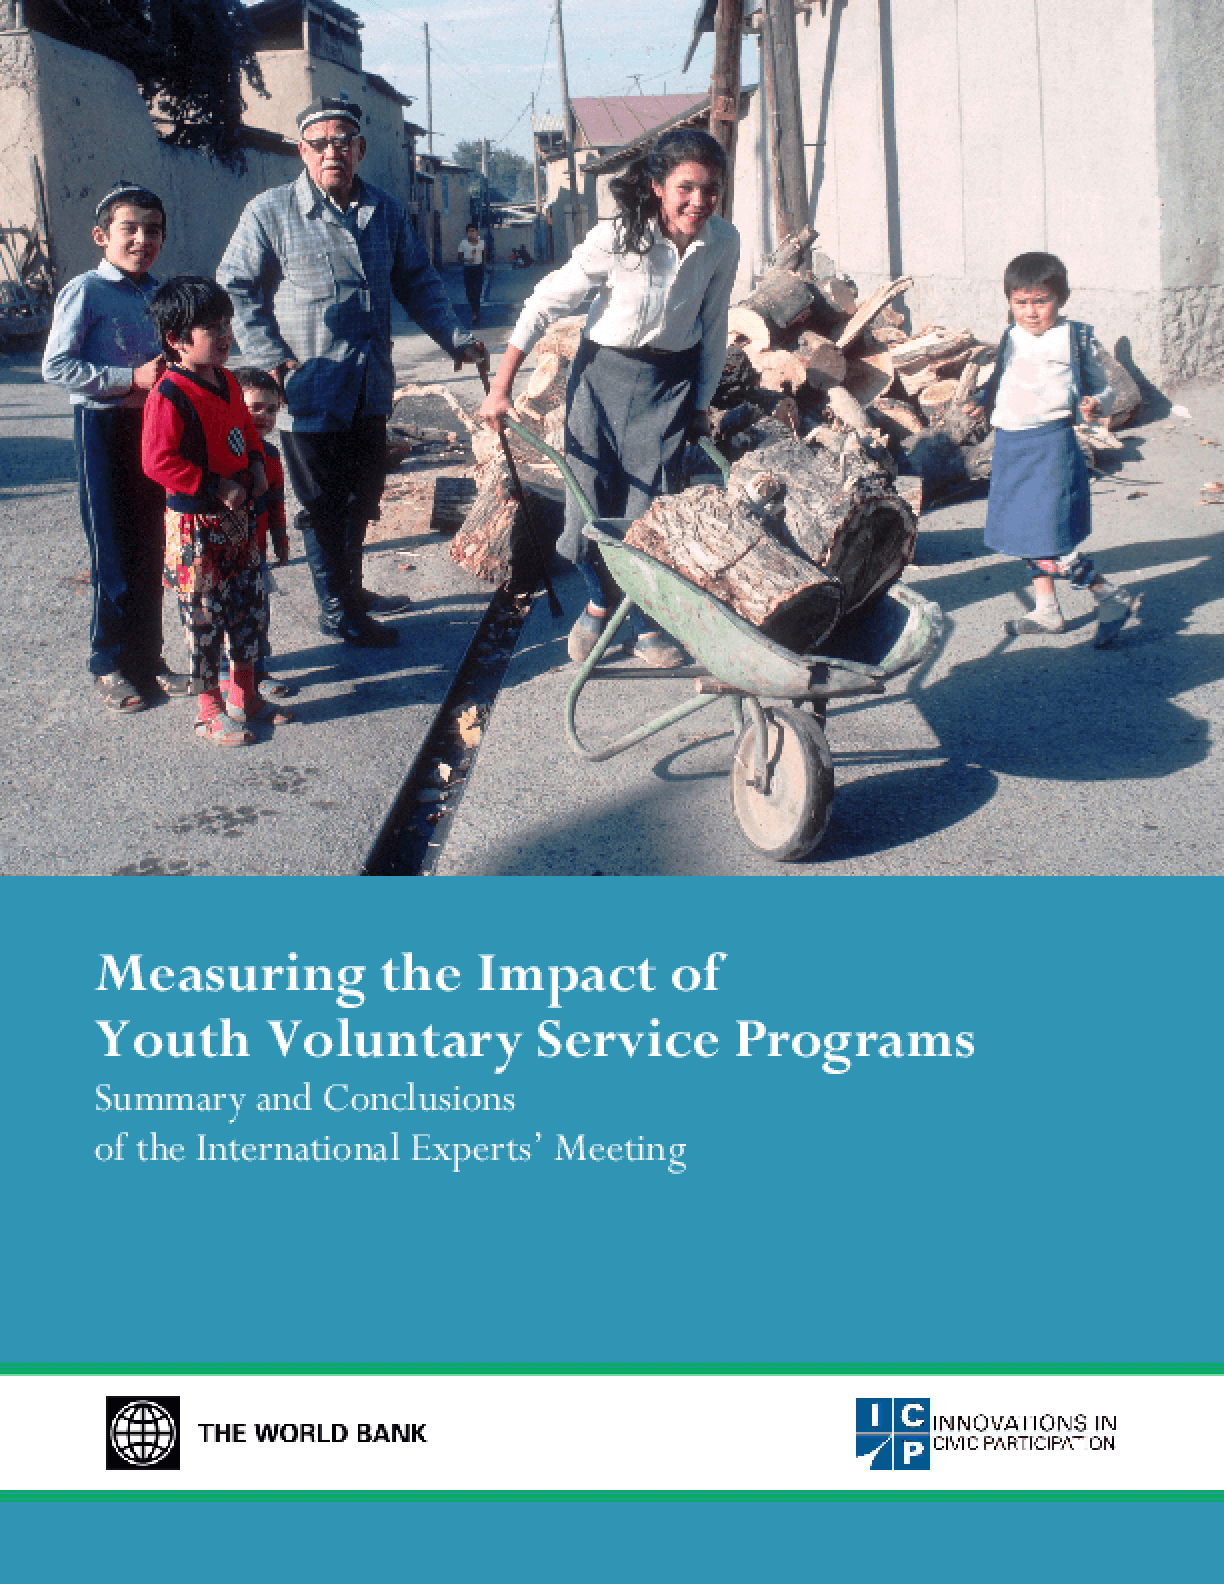 Measuring the Impact of Youth Voluntary Service Programs